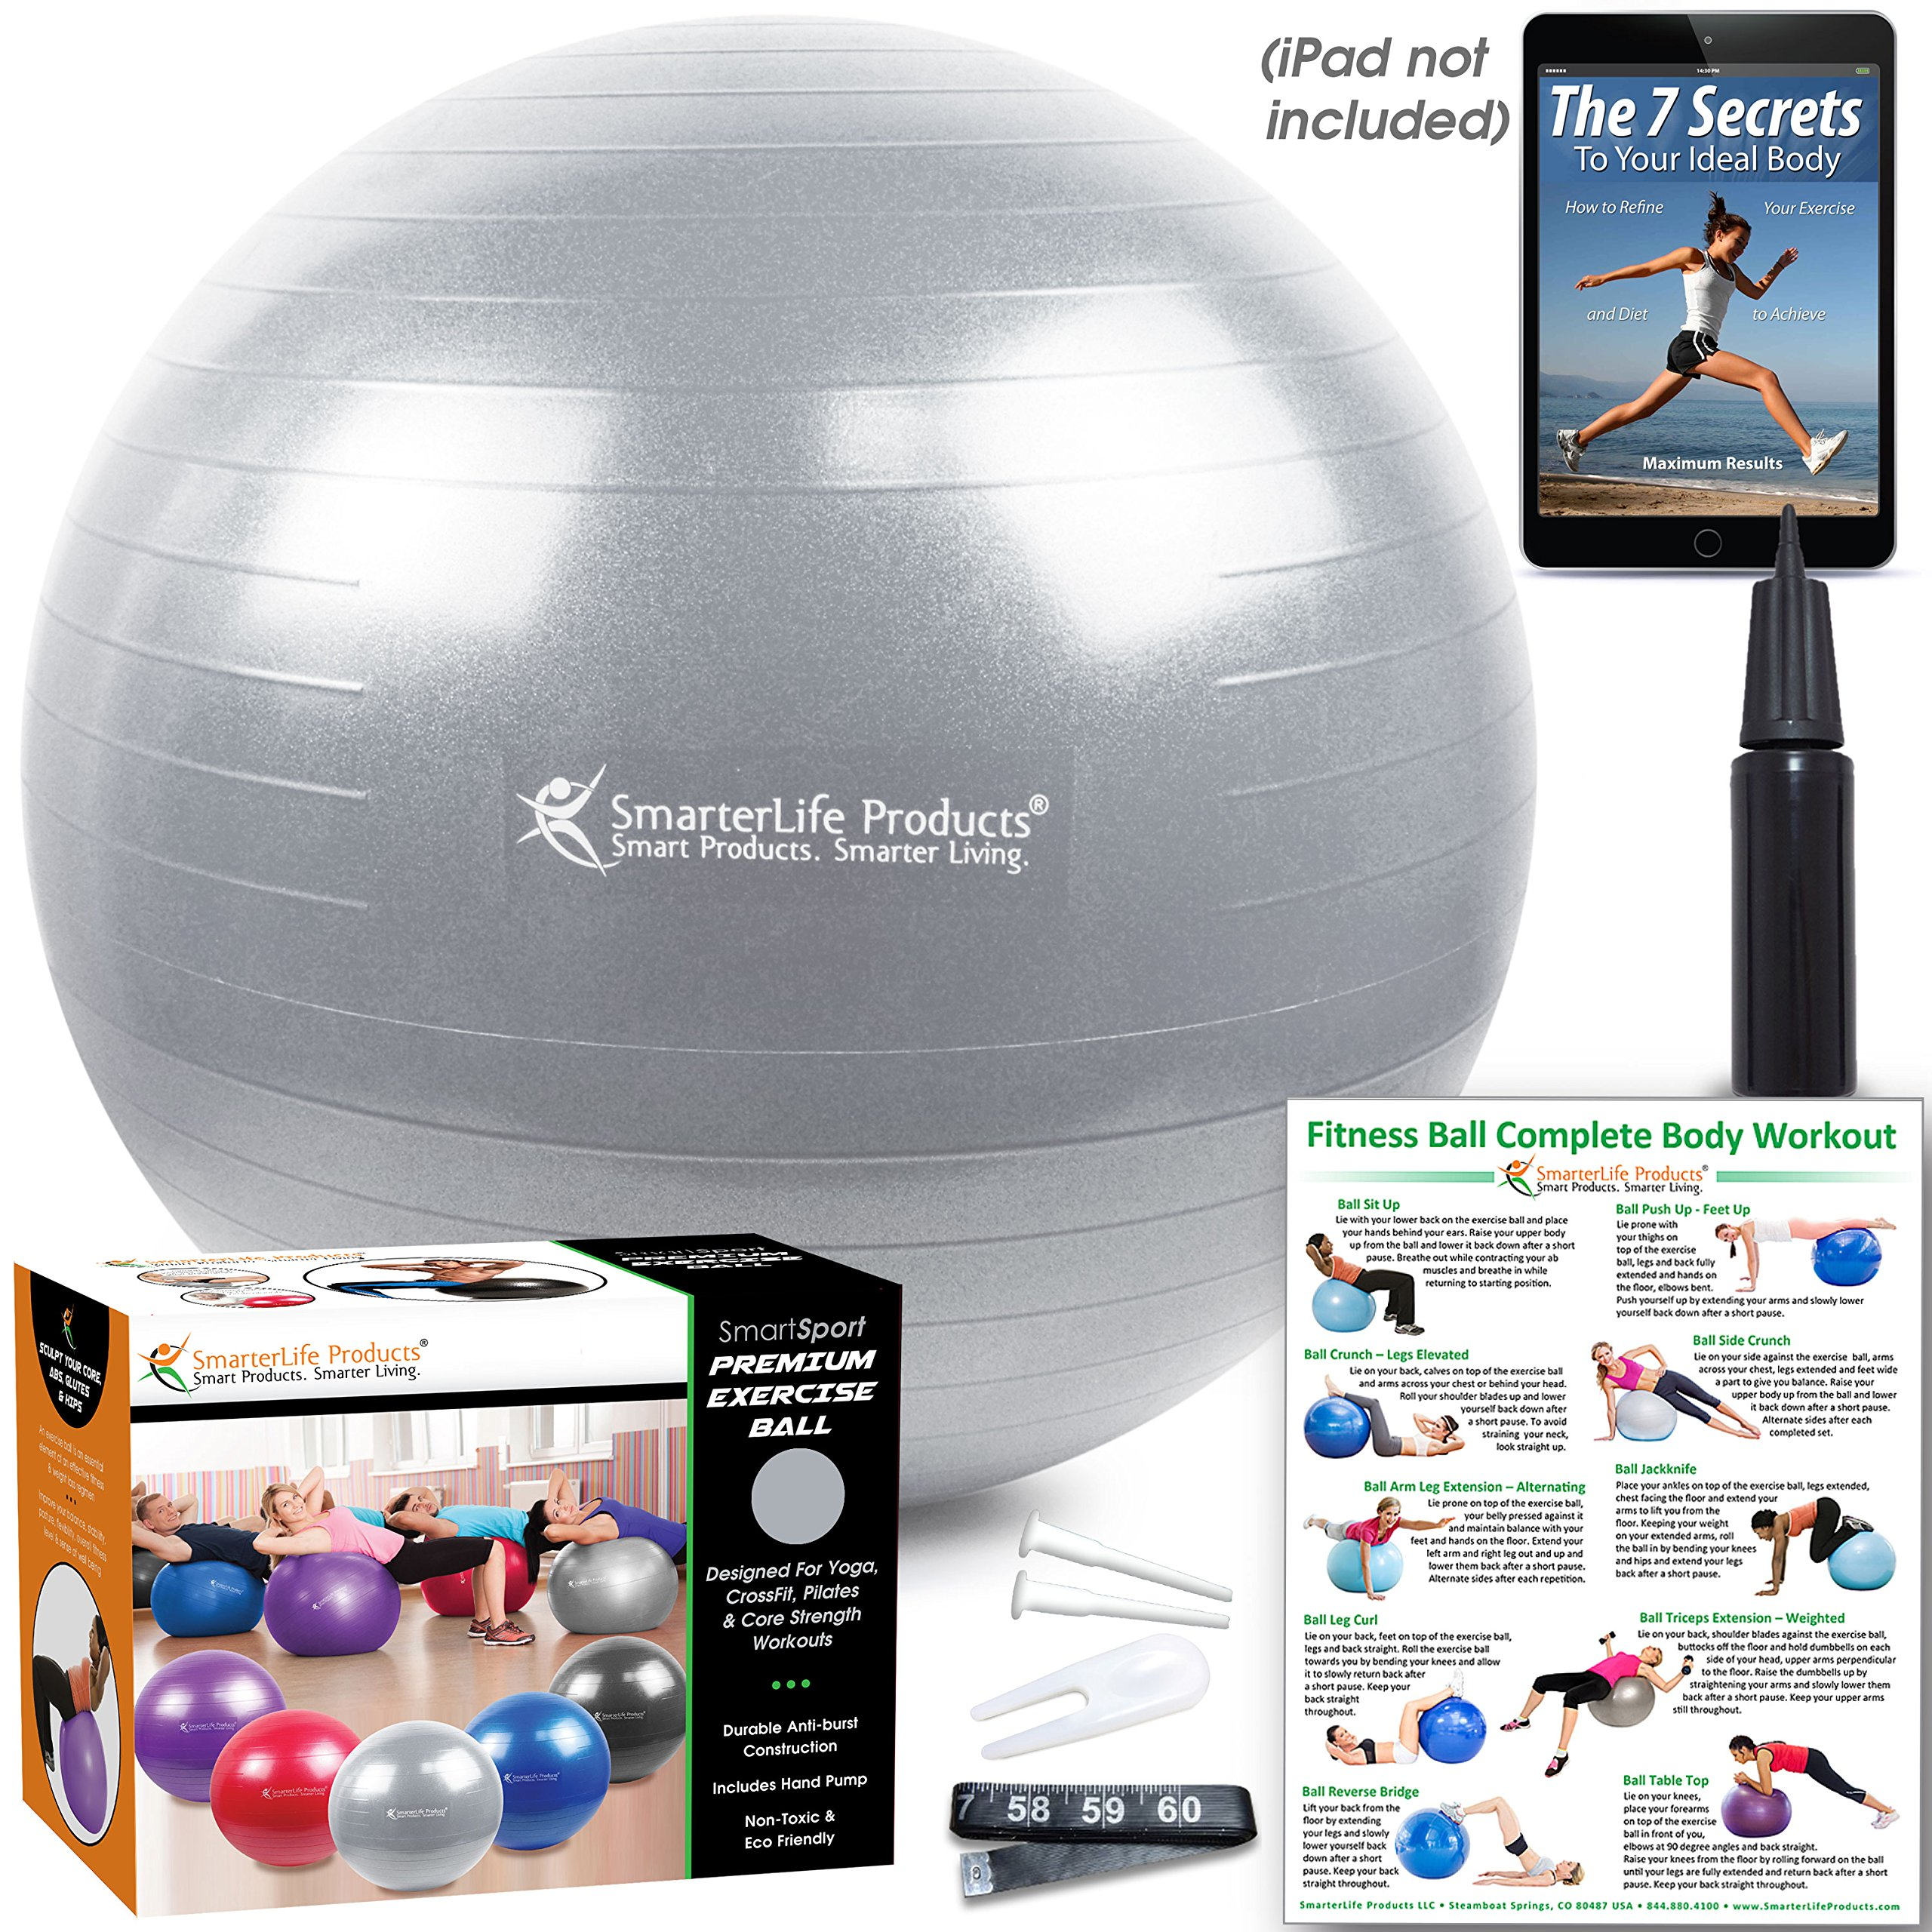 Exercise Ball for Yoga, Balance, Stability from SmarterLife - Fitness, Pilates, Birthing, Therapy, Office Ball Chair, Classroom Flexible Seating - Anti Burst, Non Slip + Workout Guide (Silver, 65cm) by SmarterLife Products (Image #5)